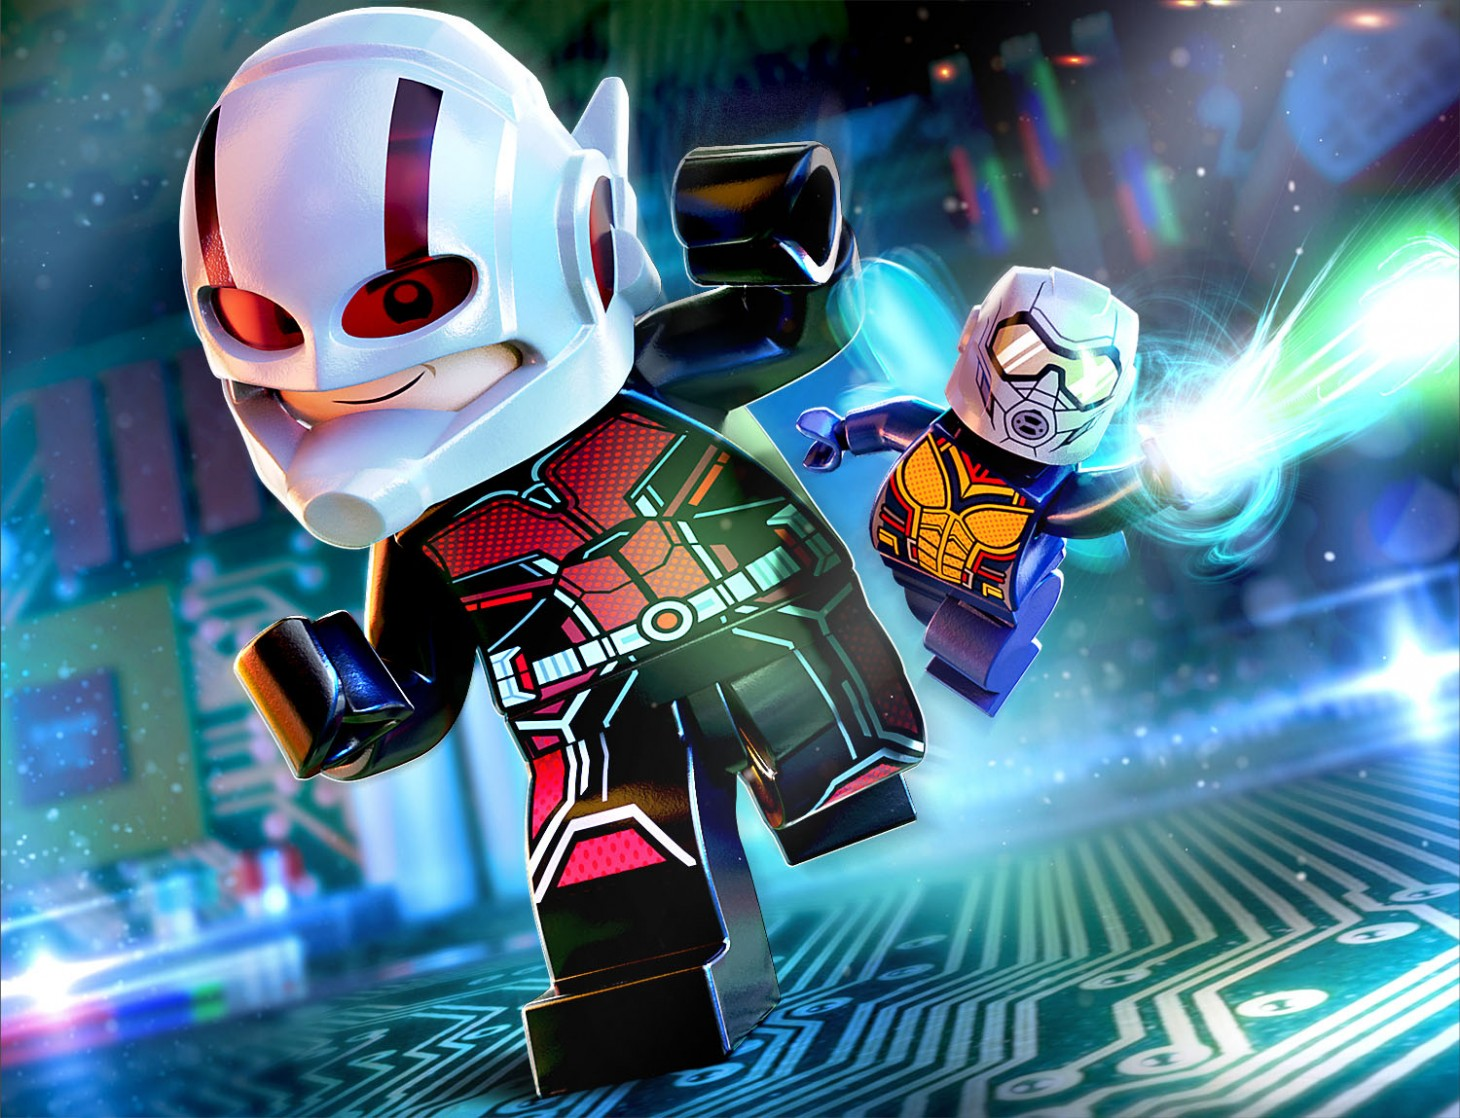 Lego Marvel Super Heroes 2 Adds Ant-Man And The Wasp DLC - Game Informer